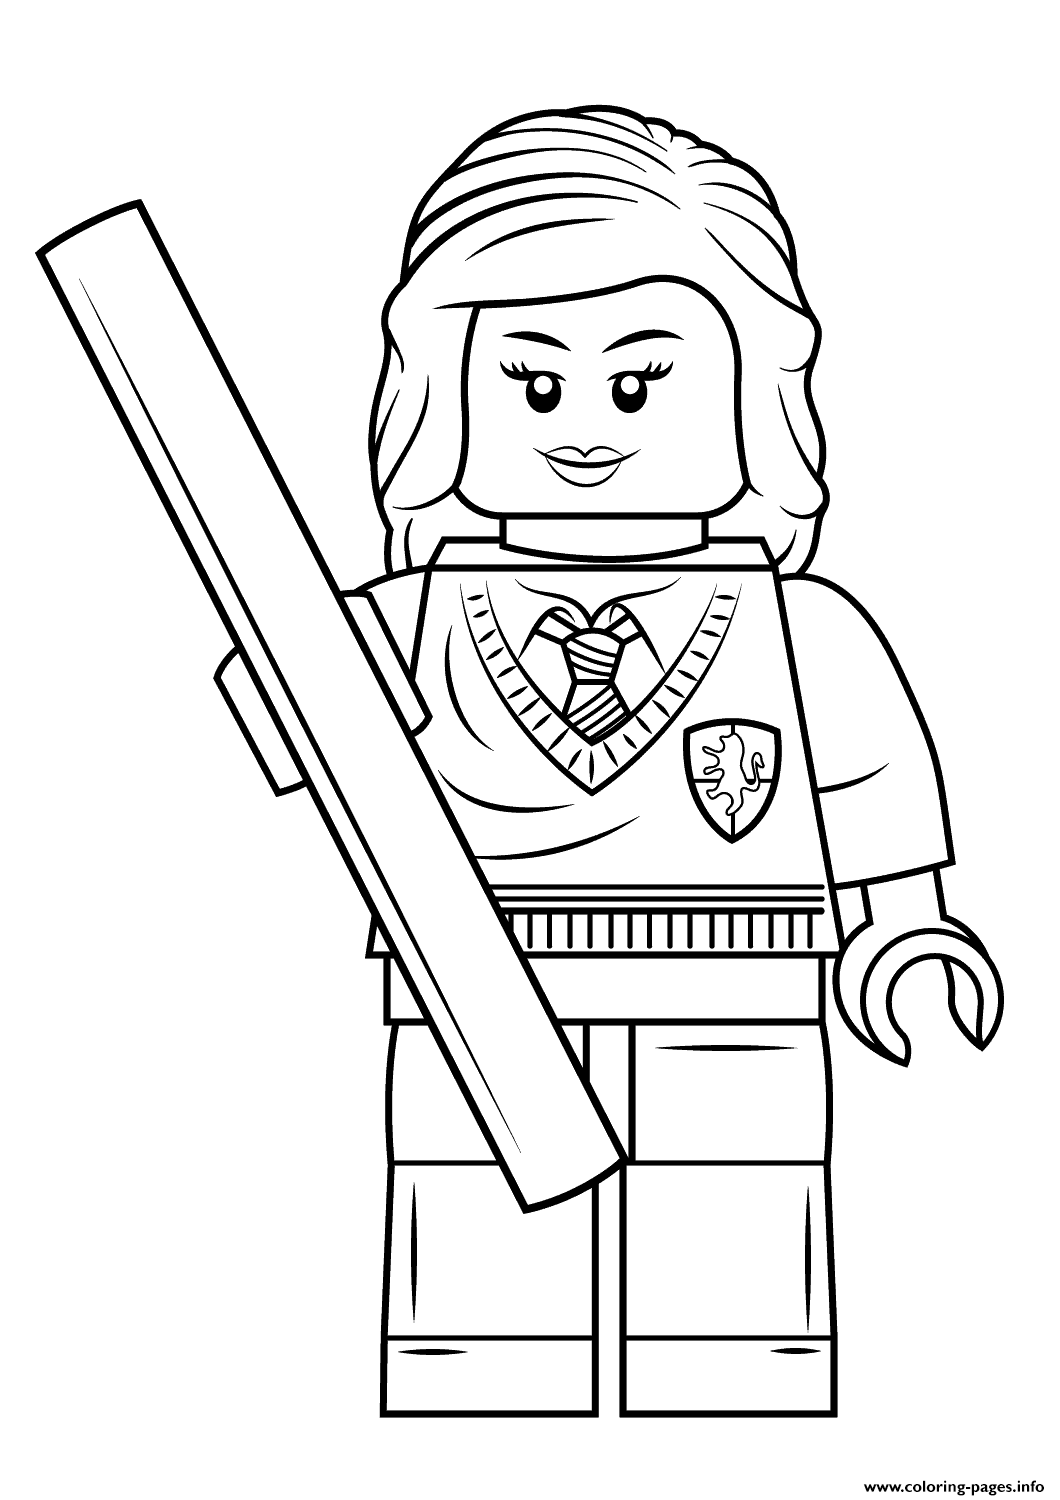 1060x1500 New Free Harry Potter Coloring Pages For Kids